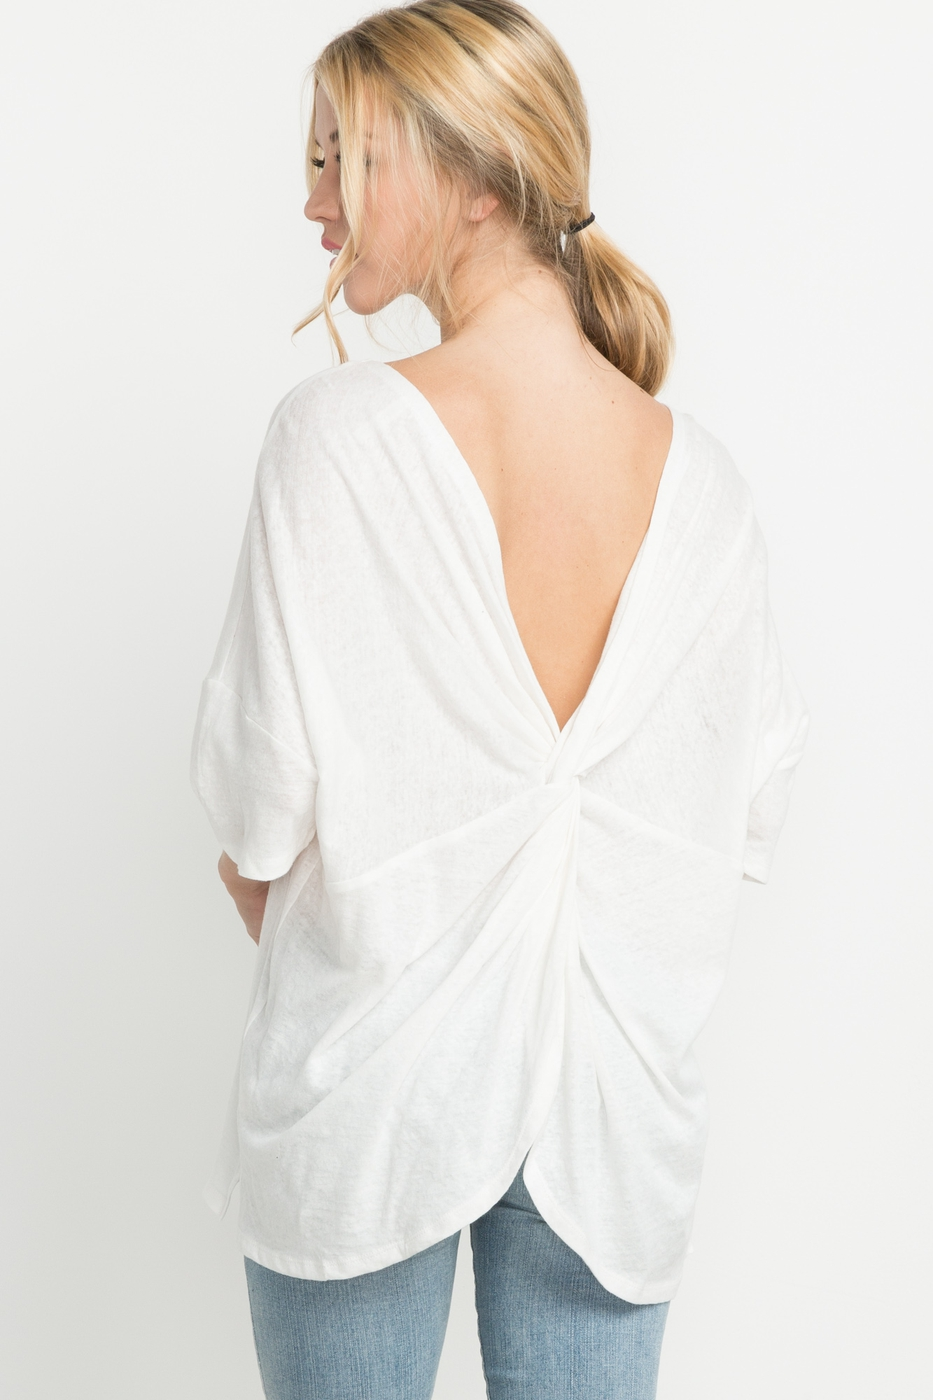 LINEN TWISTED-BACK OVERSIZED TOP - orangeshine.com